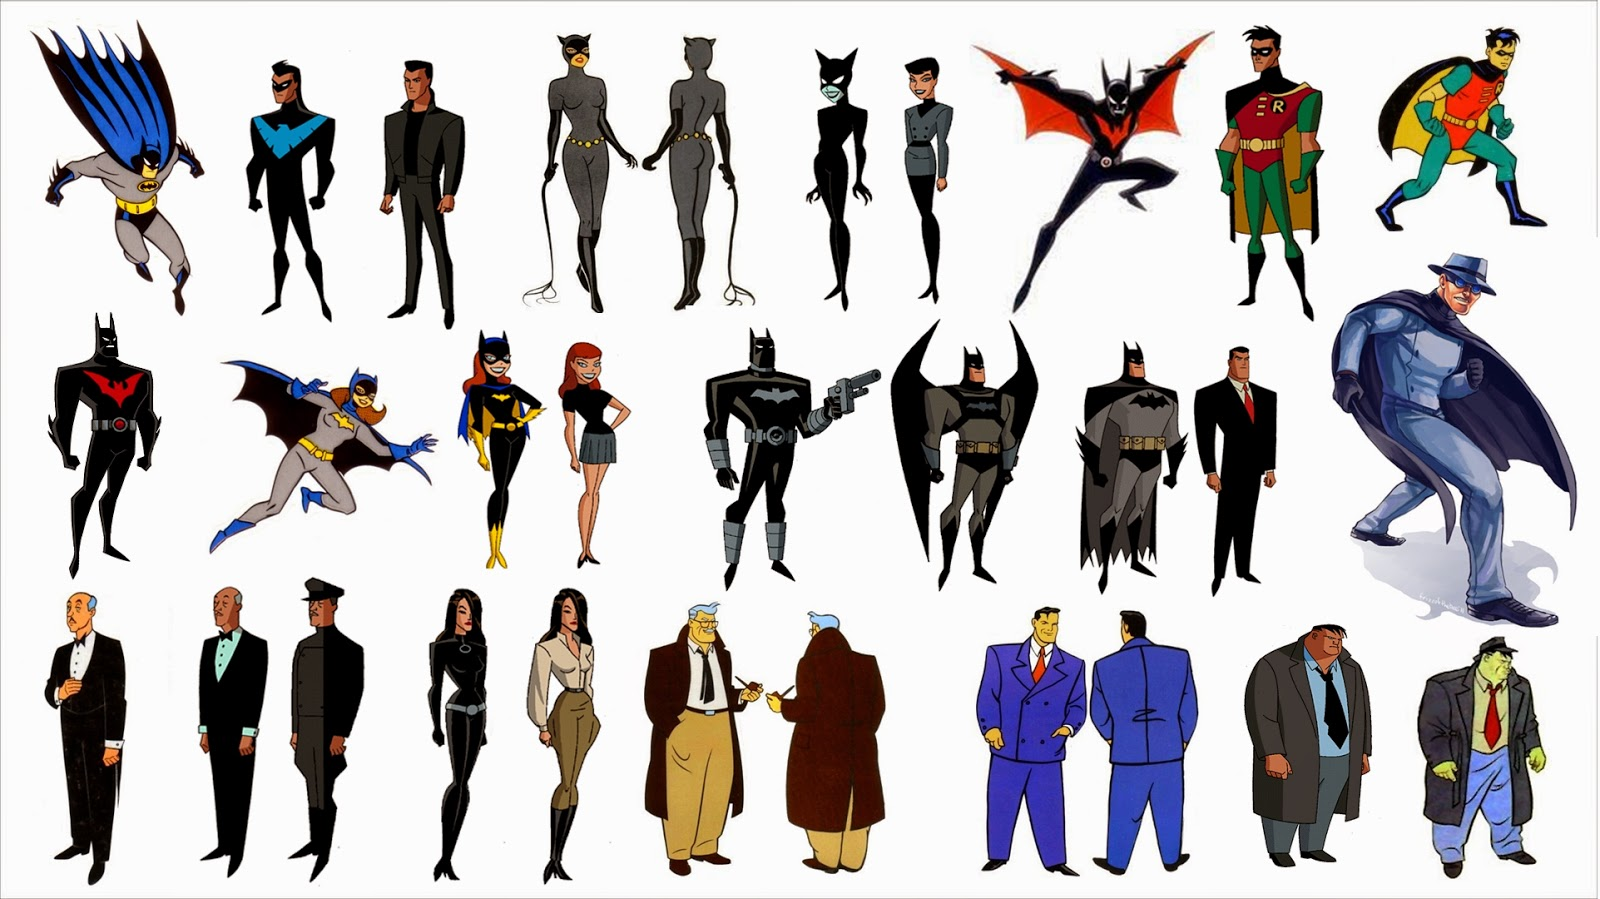 Can You Identify These Comic Superheroes?